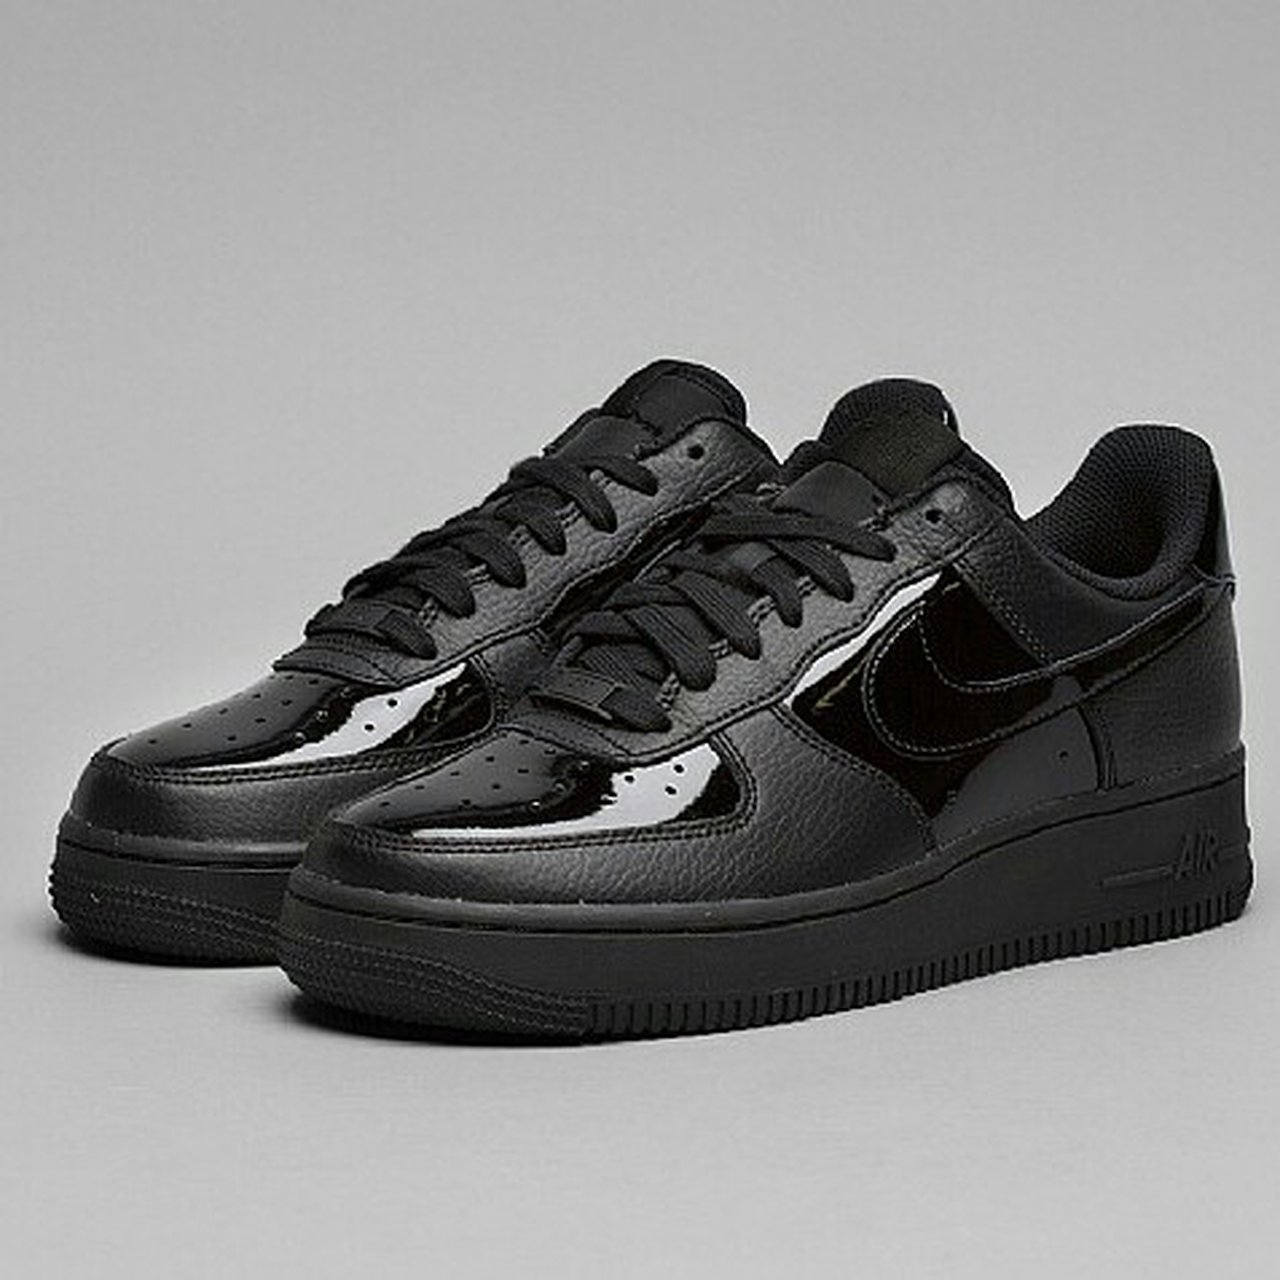 NIKE AIR FORCE 1'07 PATENT] black and